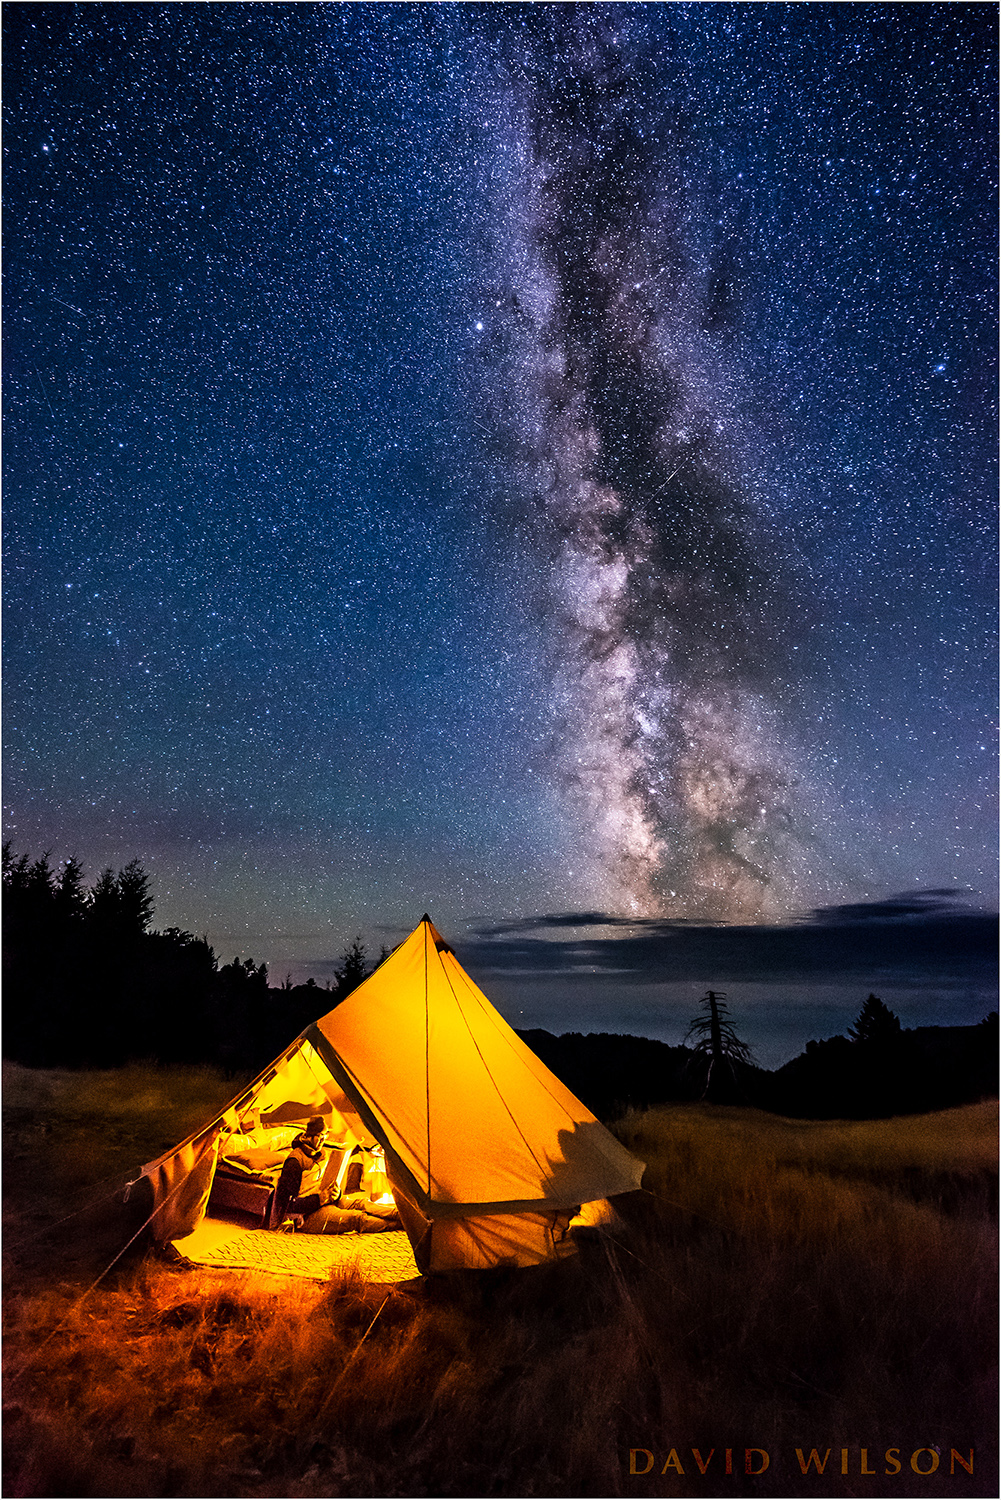 Camping beneath the Milky Way on Paradise Ridge, Lost Coast, Humboldt County, California.